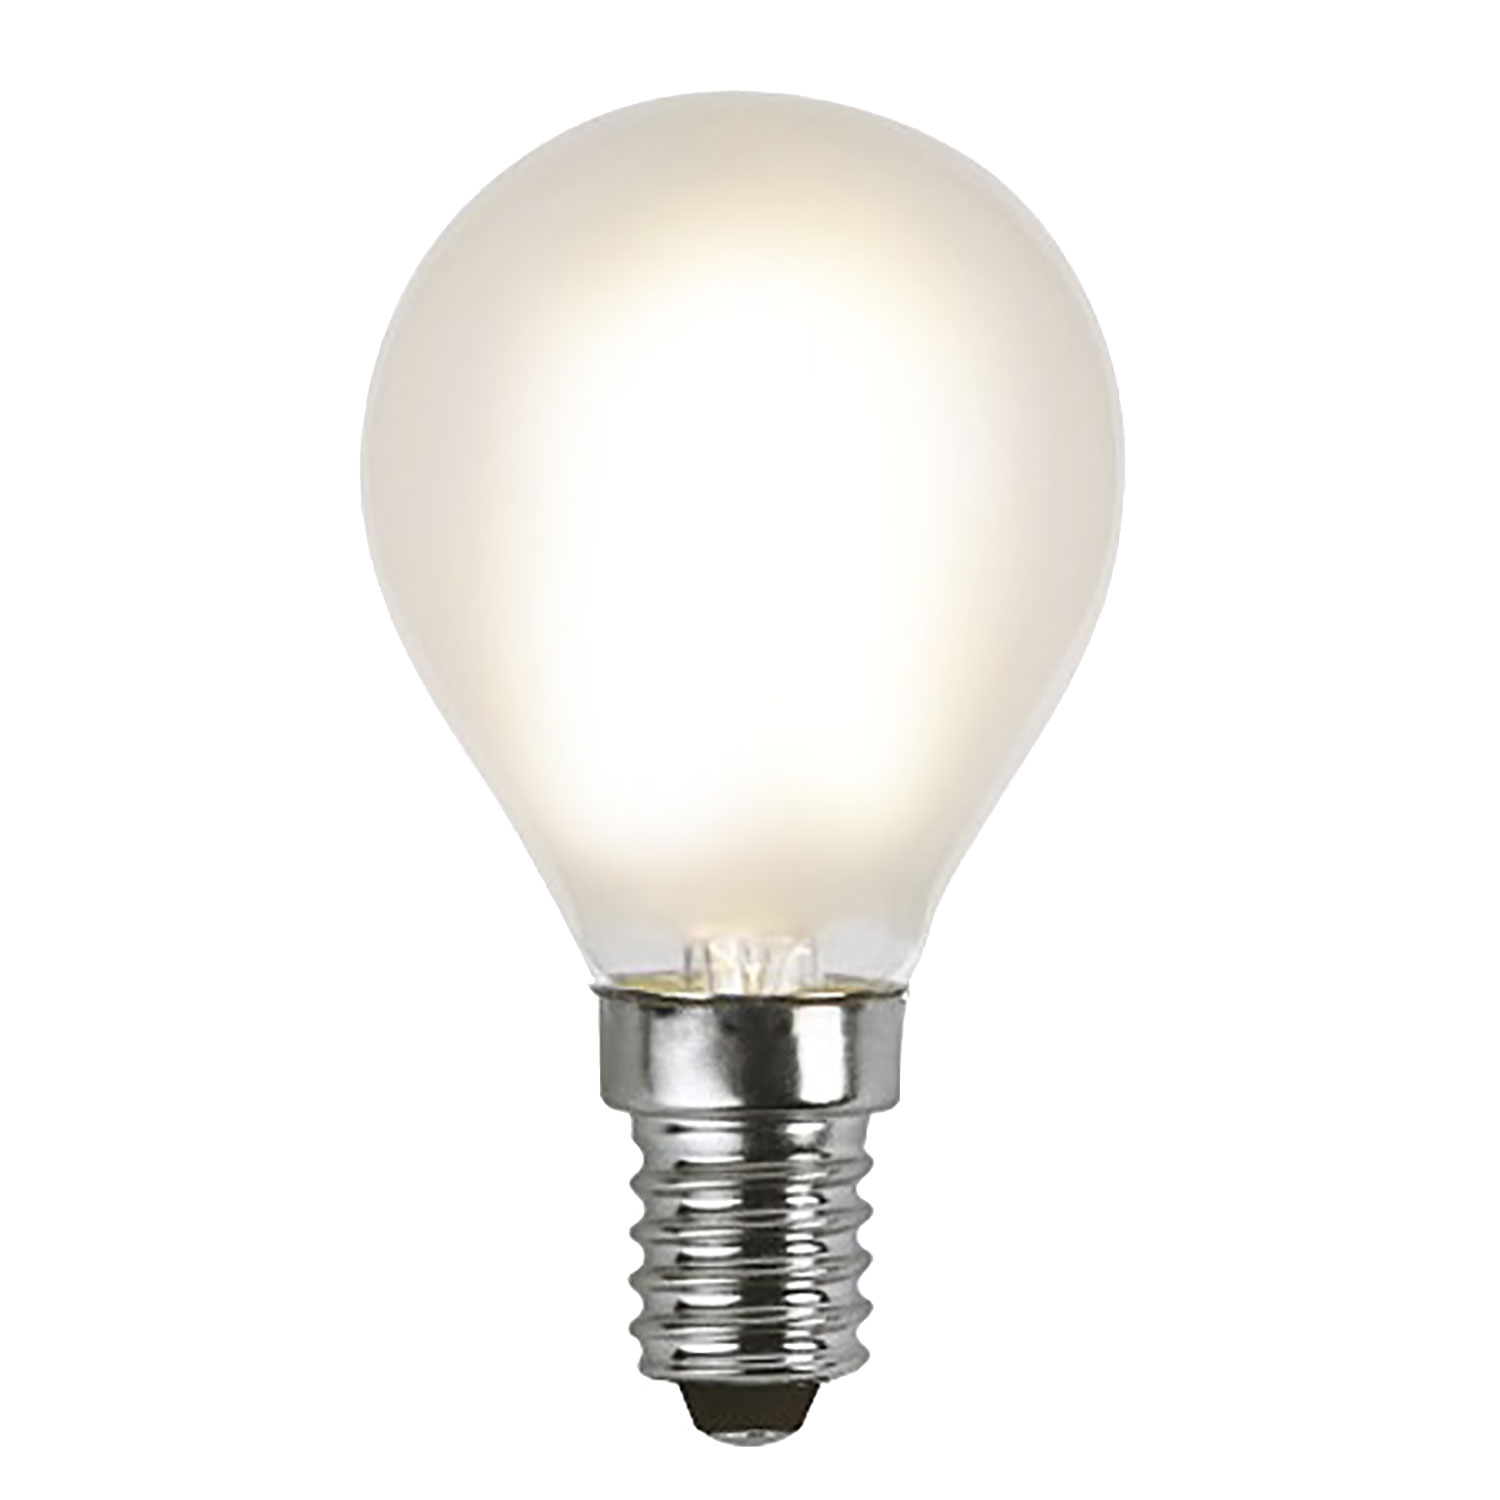 LED-lampa E14 P45 frosted filament